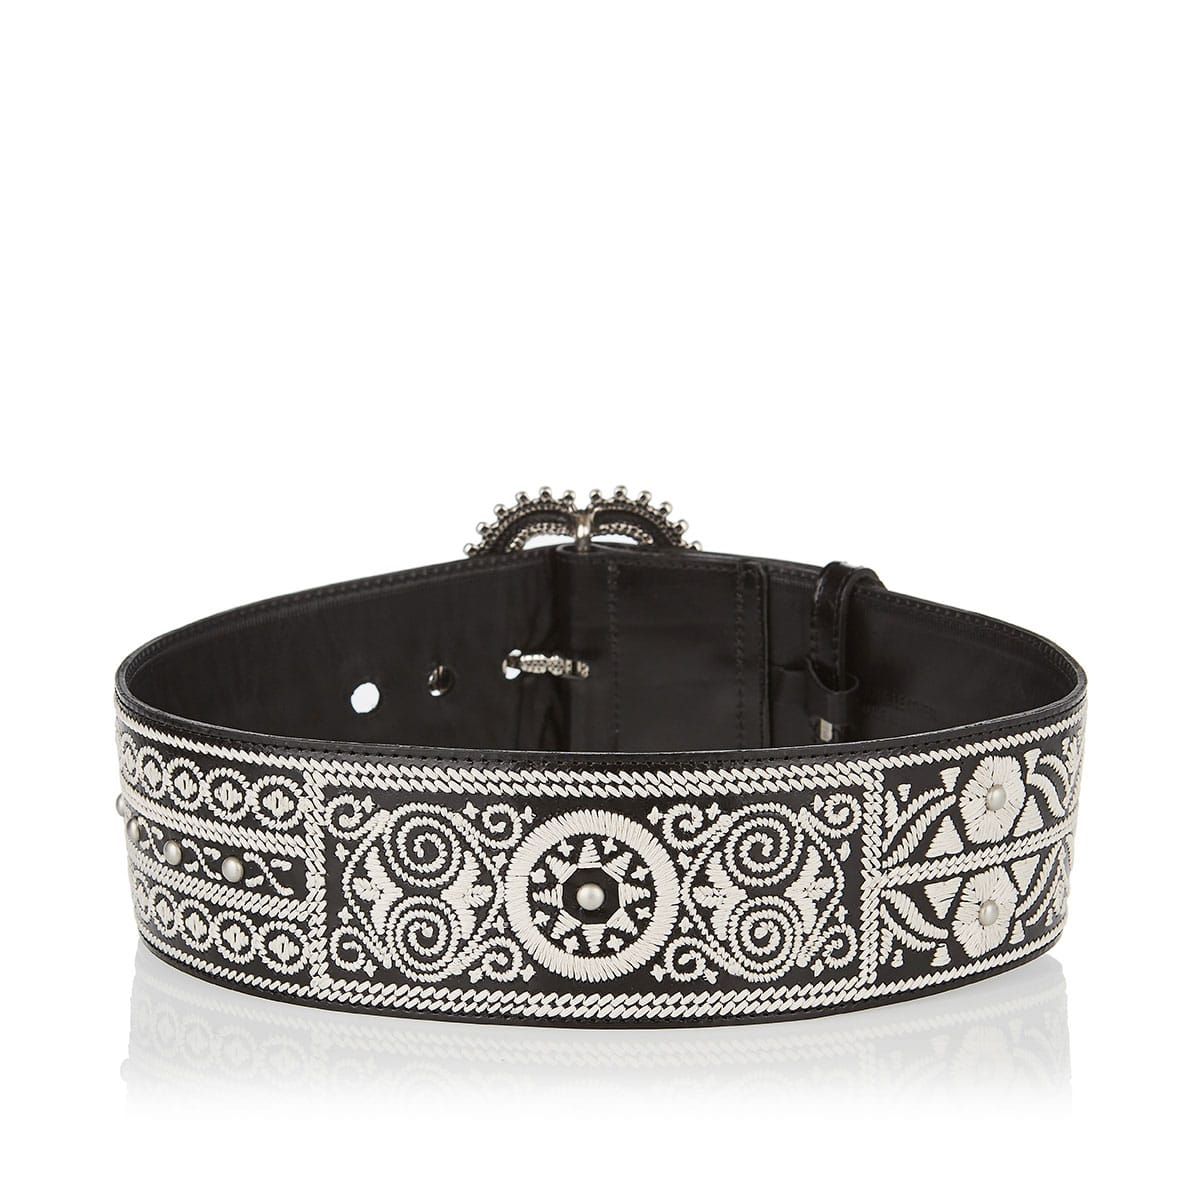 Embroidered wide leather belt